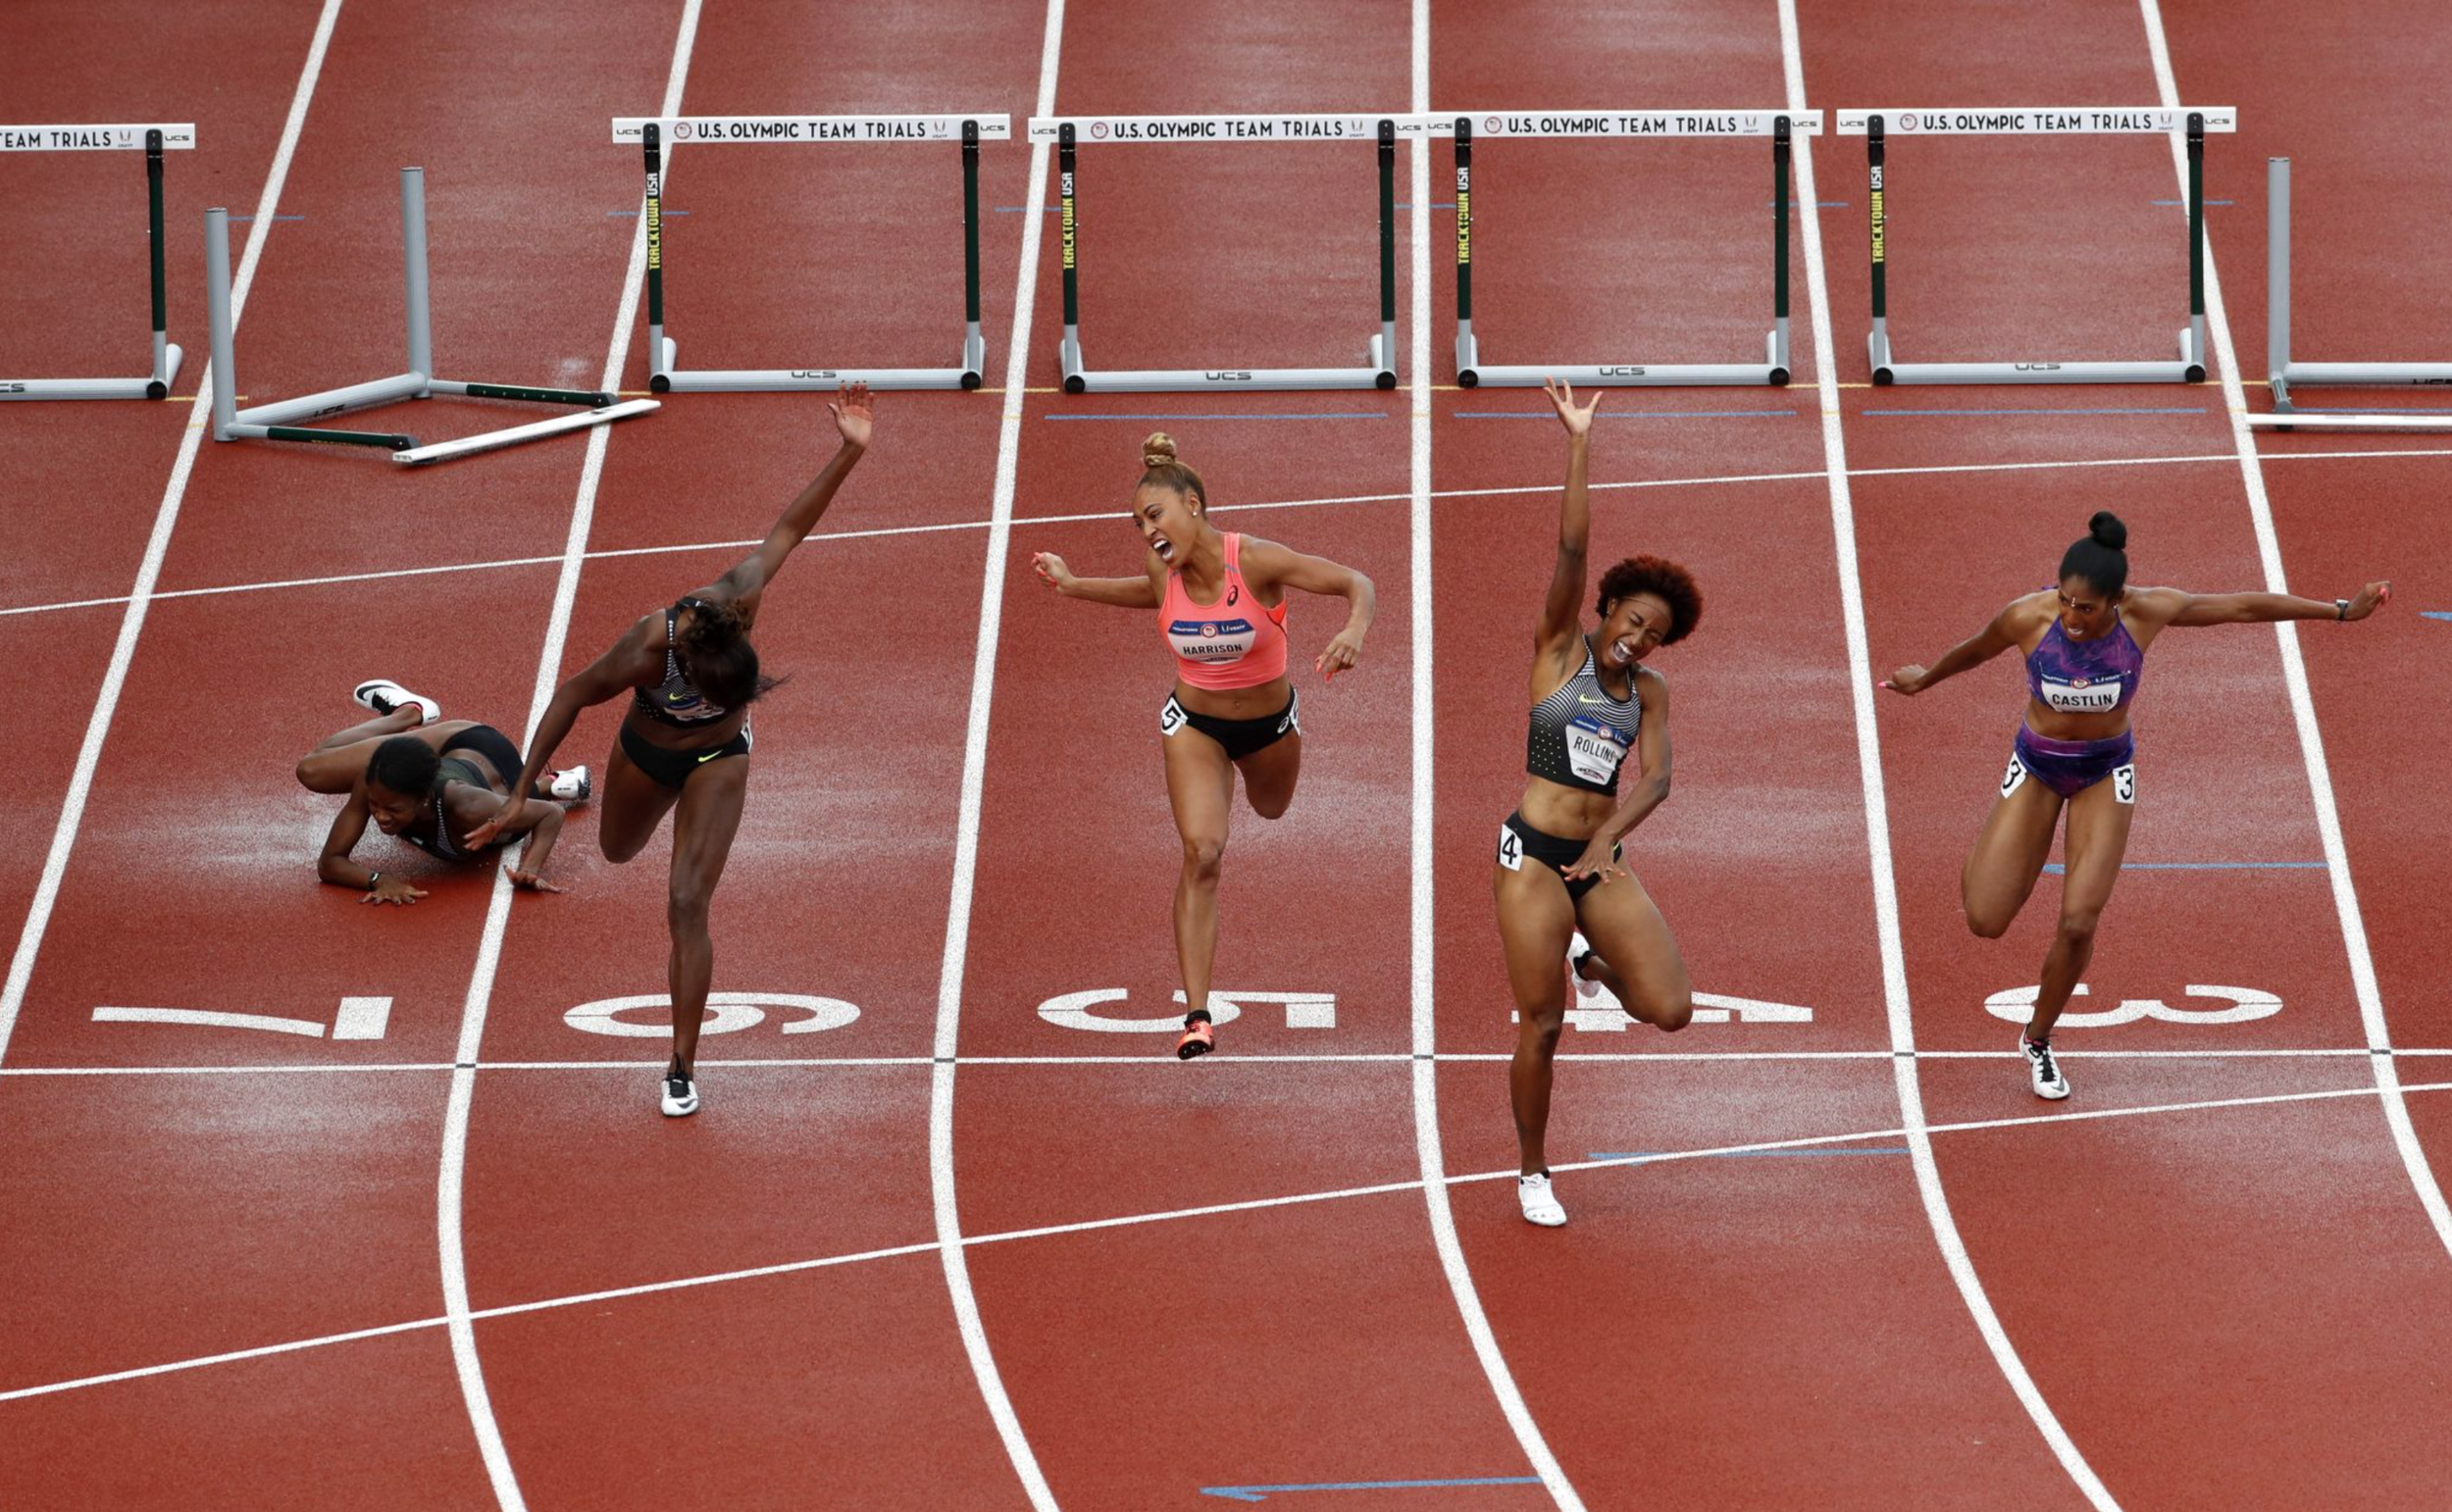 Brianna Rollins won the 100-meter hurdles final, while Jasmin Stowers fell shortly before the finish line.